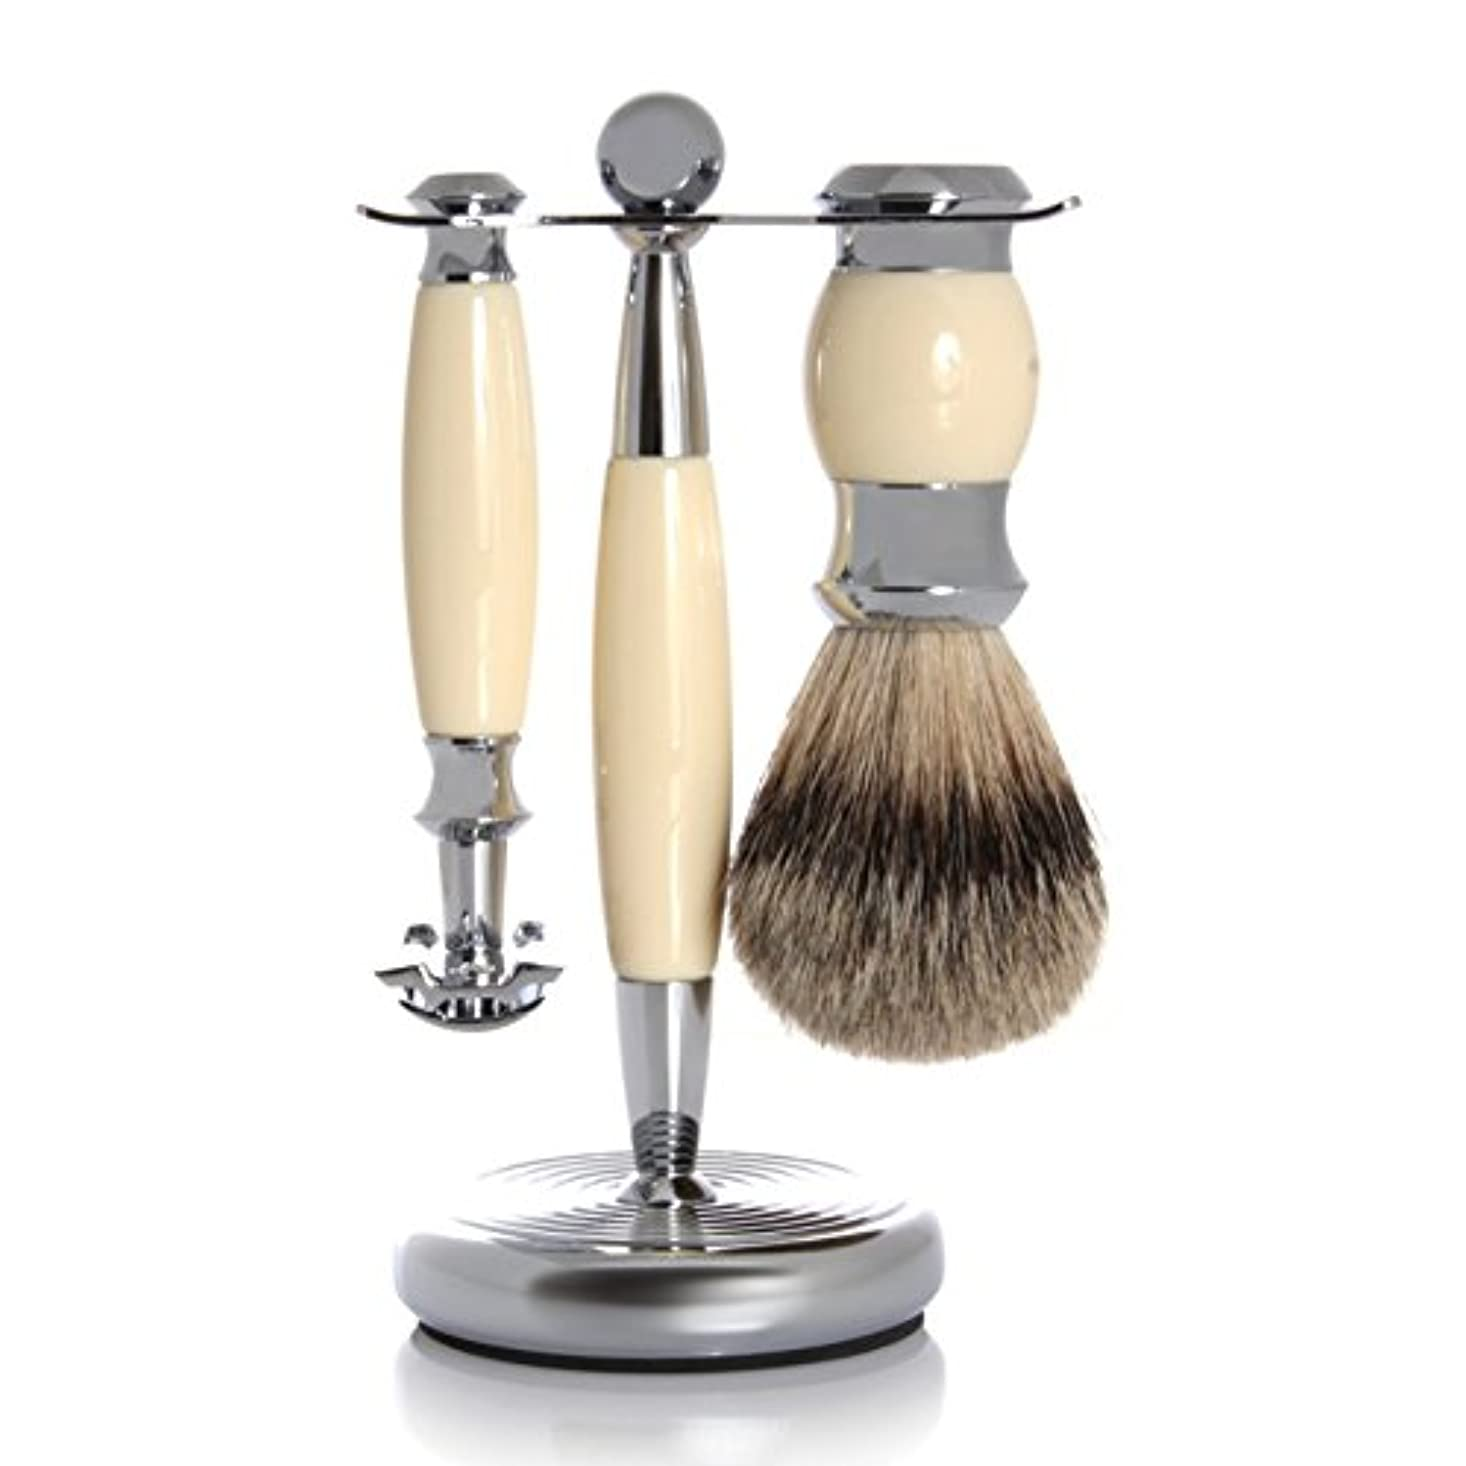 ウェーハアニメーション郵便物GOLDDACHS Shaving Set, Safety razor, Finest Badger, white/silver